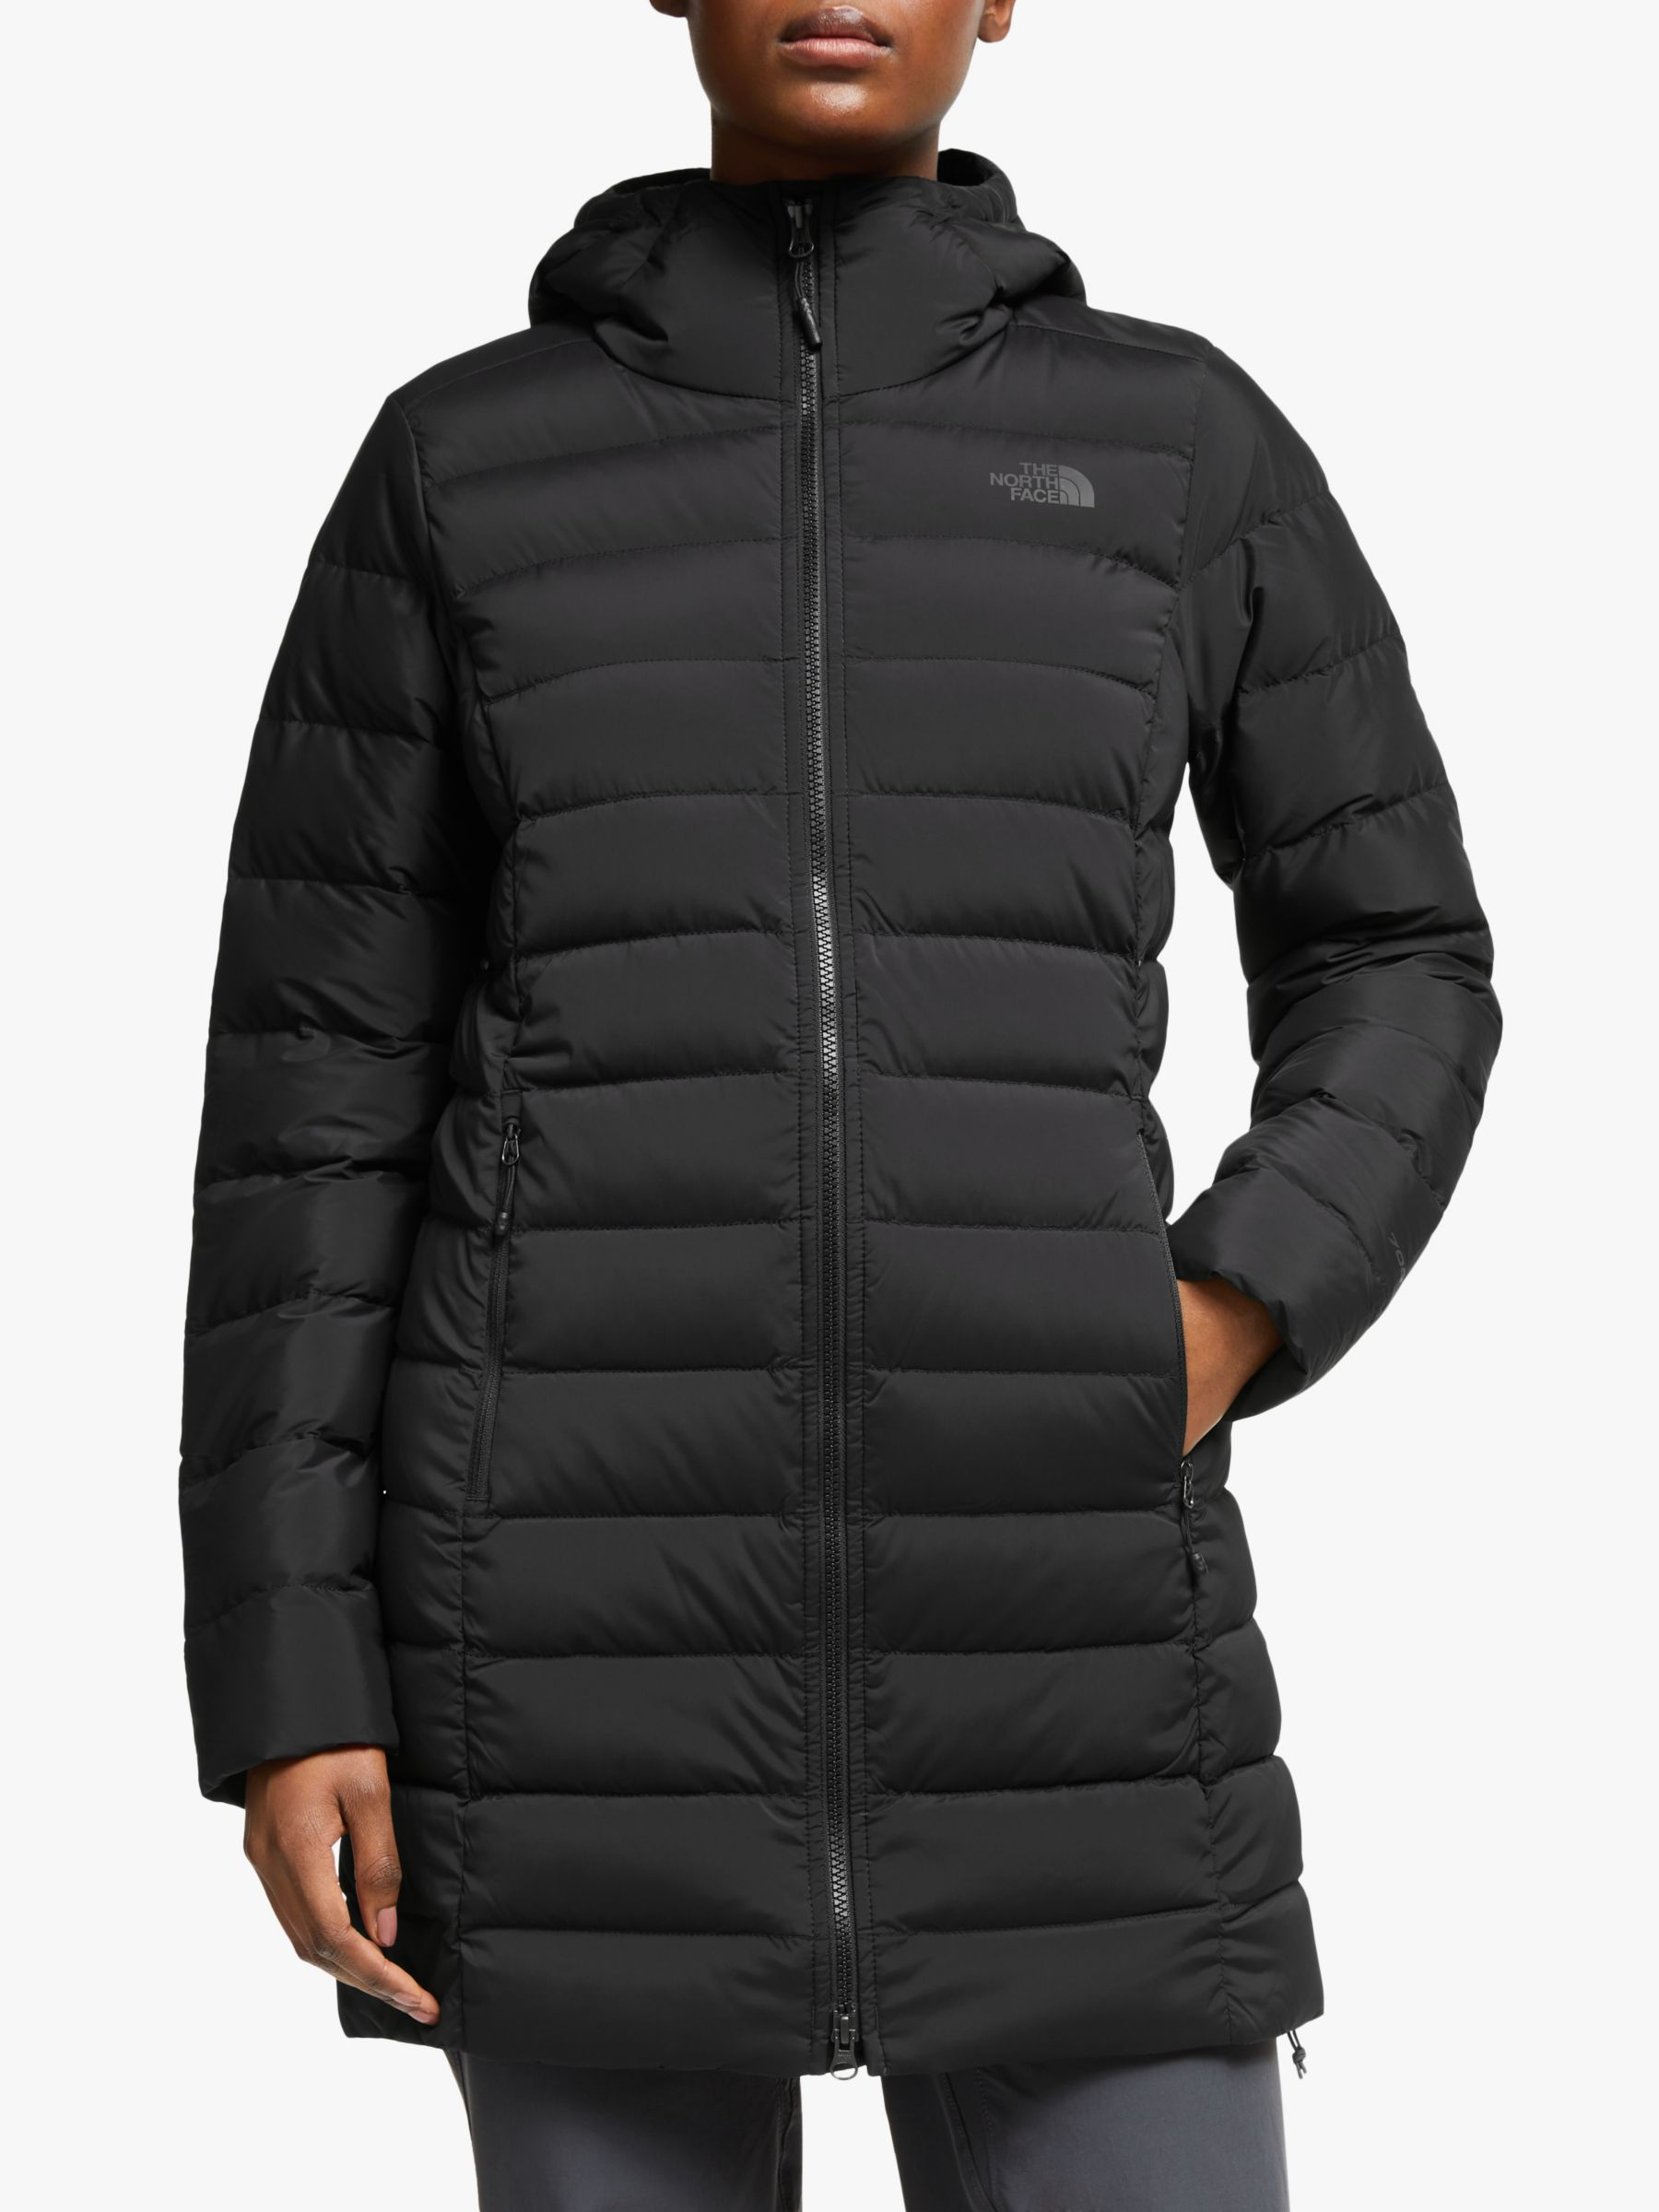 The North Face Women's Parka Jacket in 2020 | Black north ...